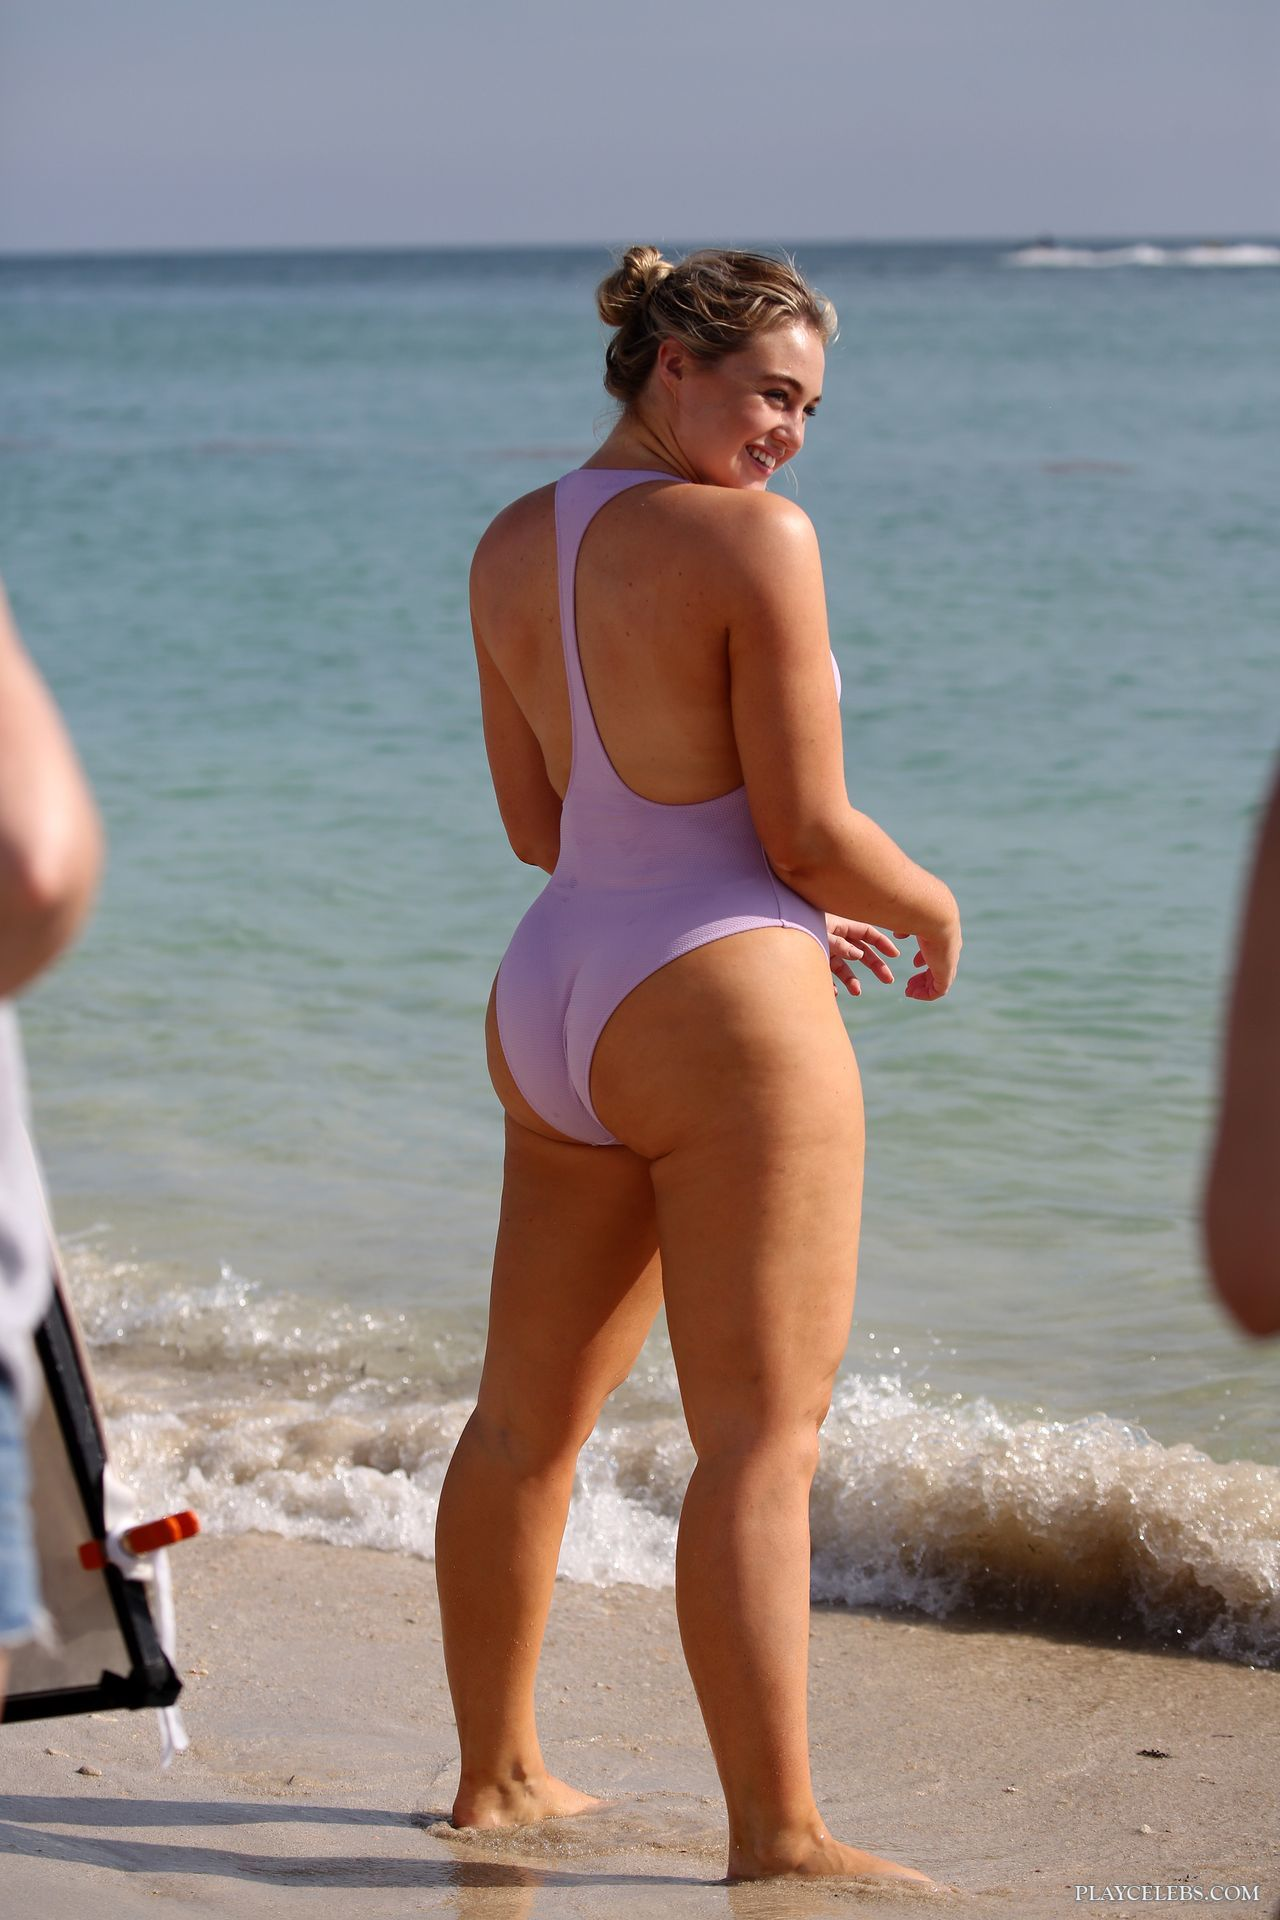 Iskra Lawrence Displays Her Puffy Body In Bikini During Photoshoot